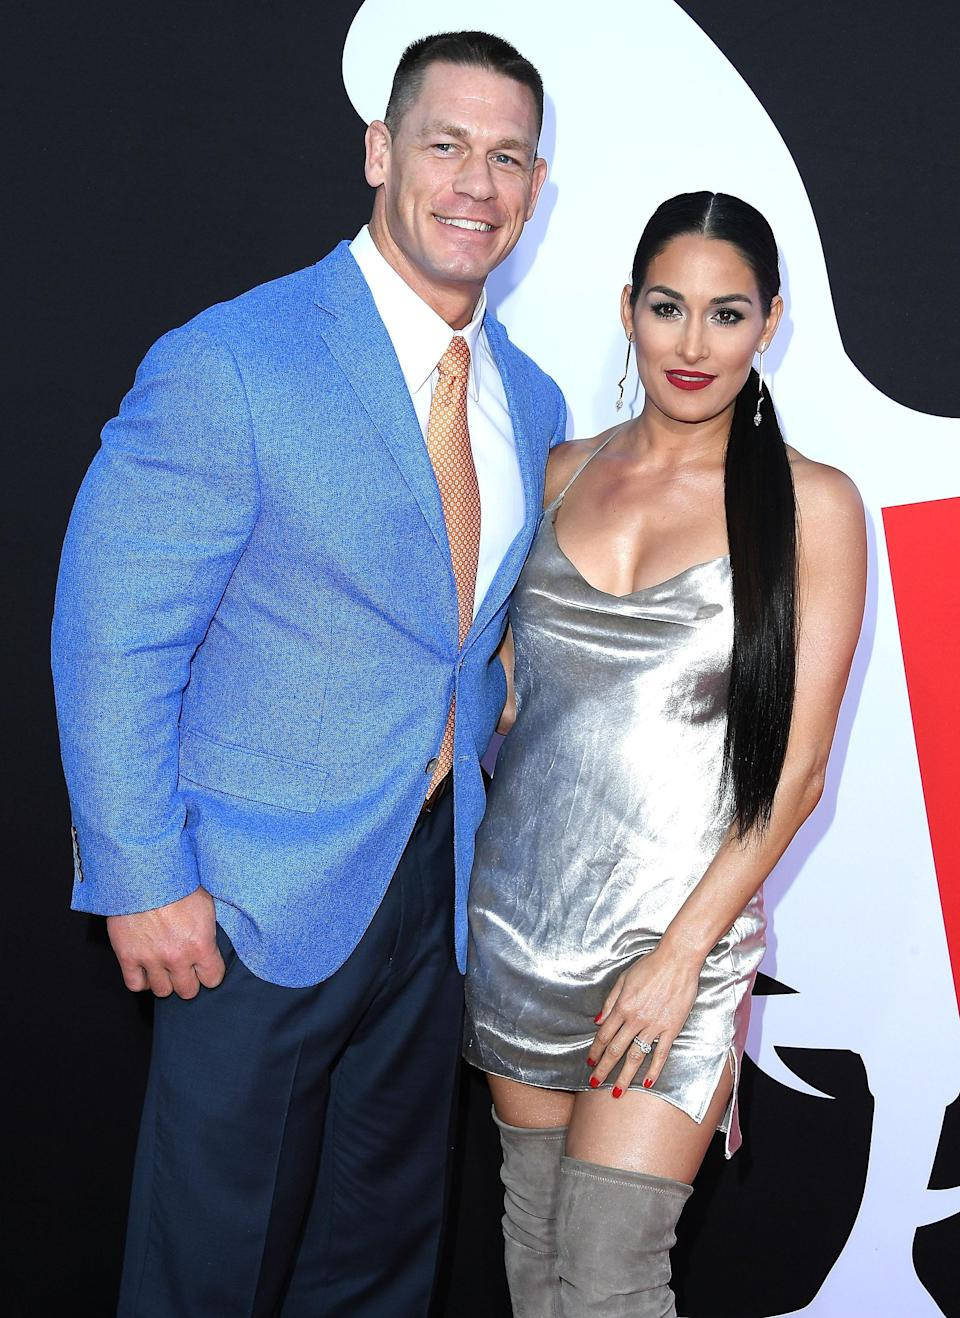 John Cena and Nikki Bella ended their engagement weeks before their destination wedding. (Getty Images)